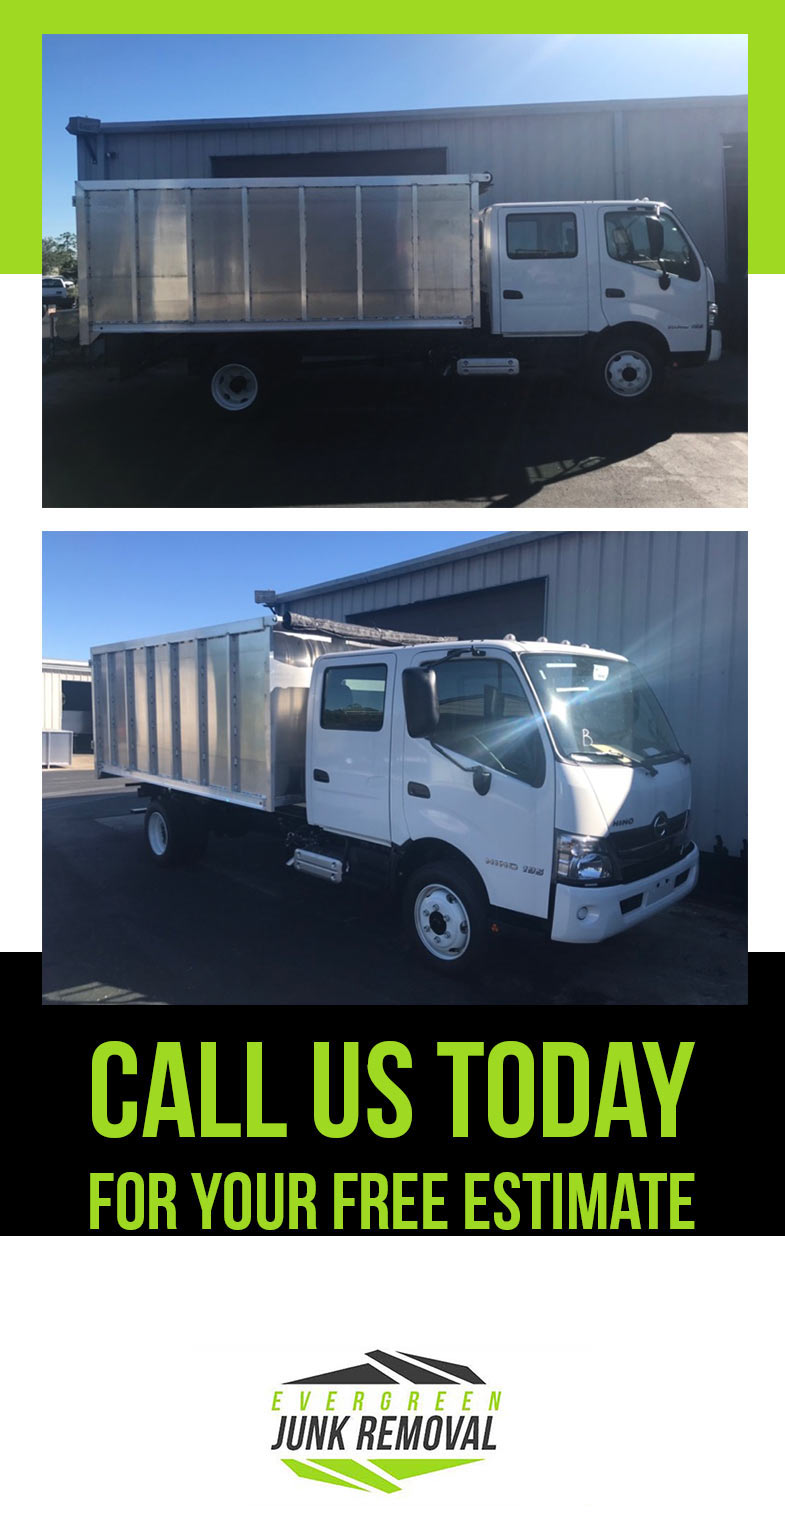 Junk-Removal-Haines-City